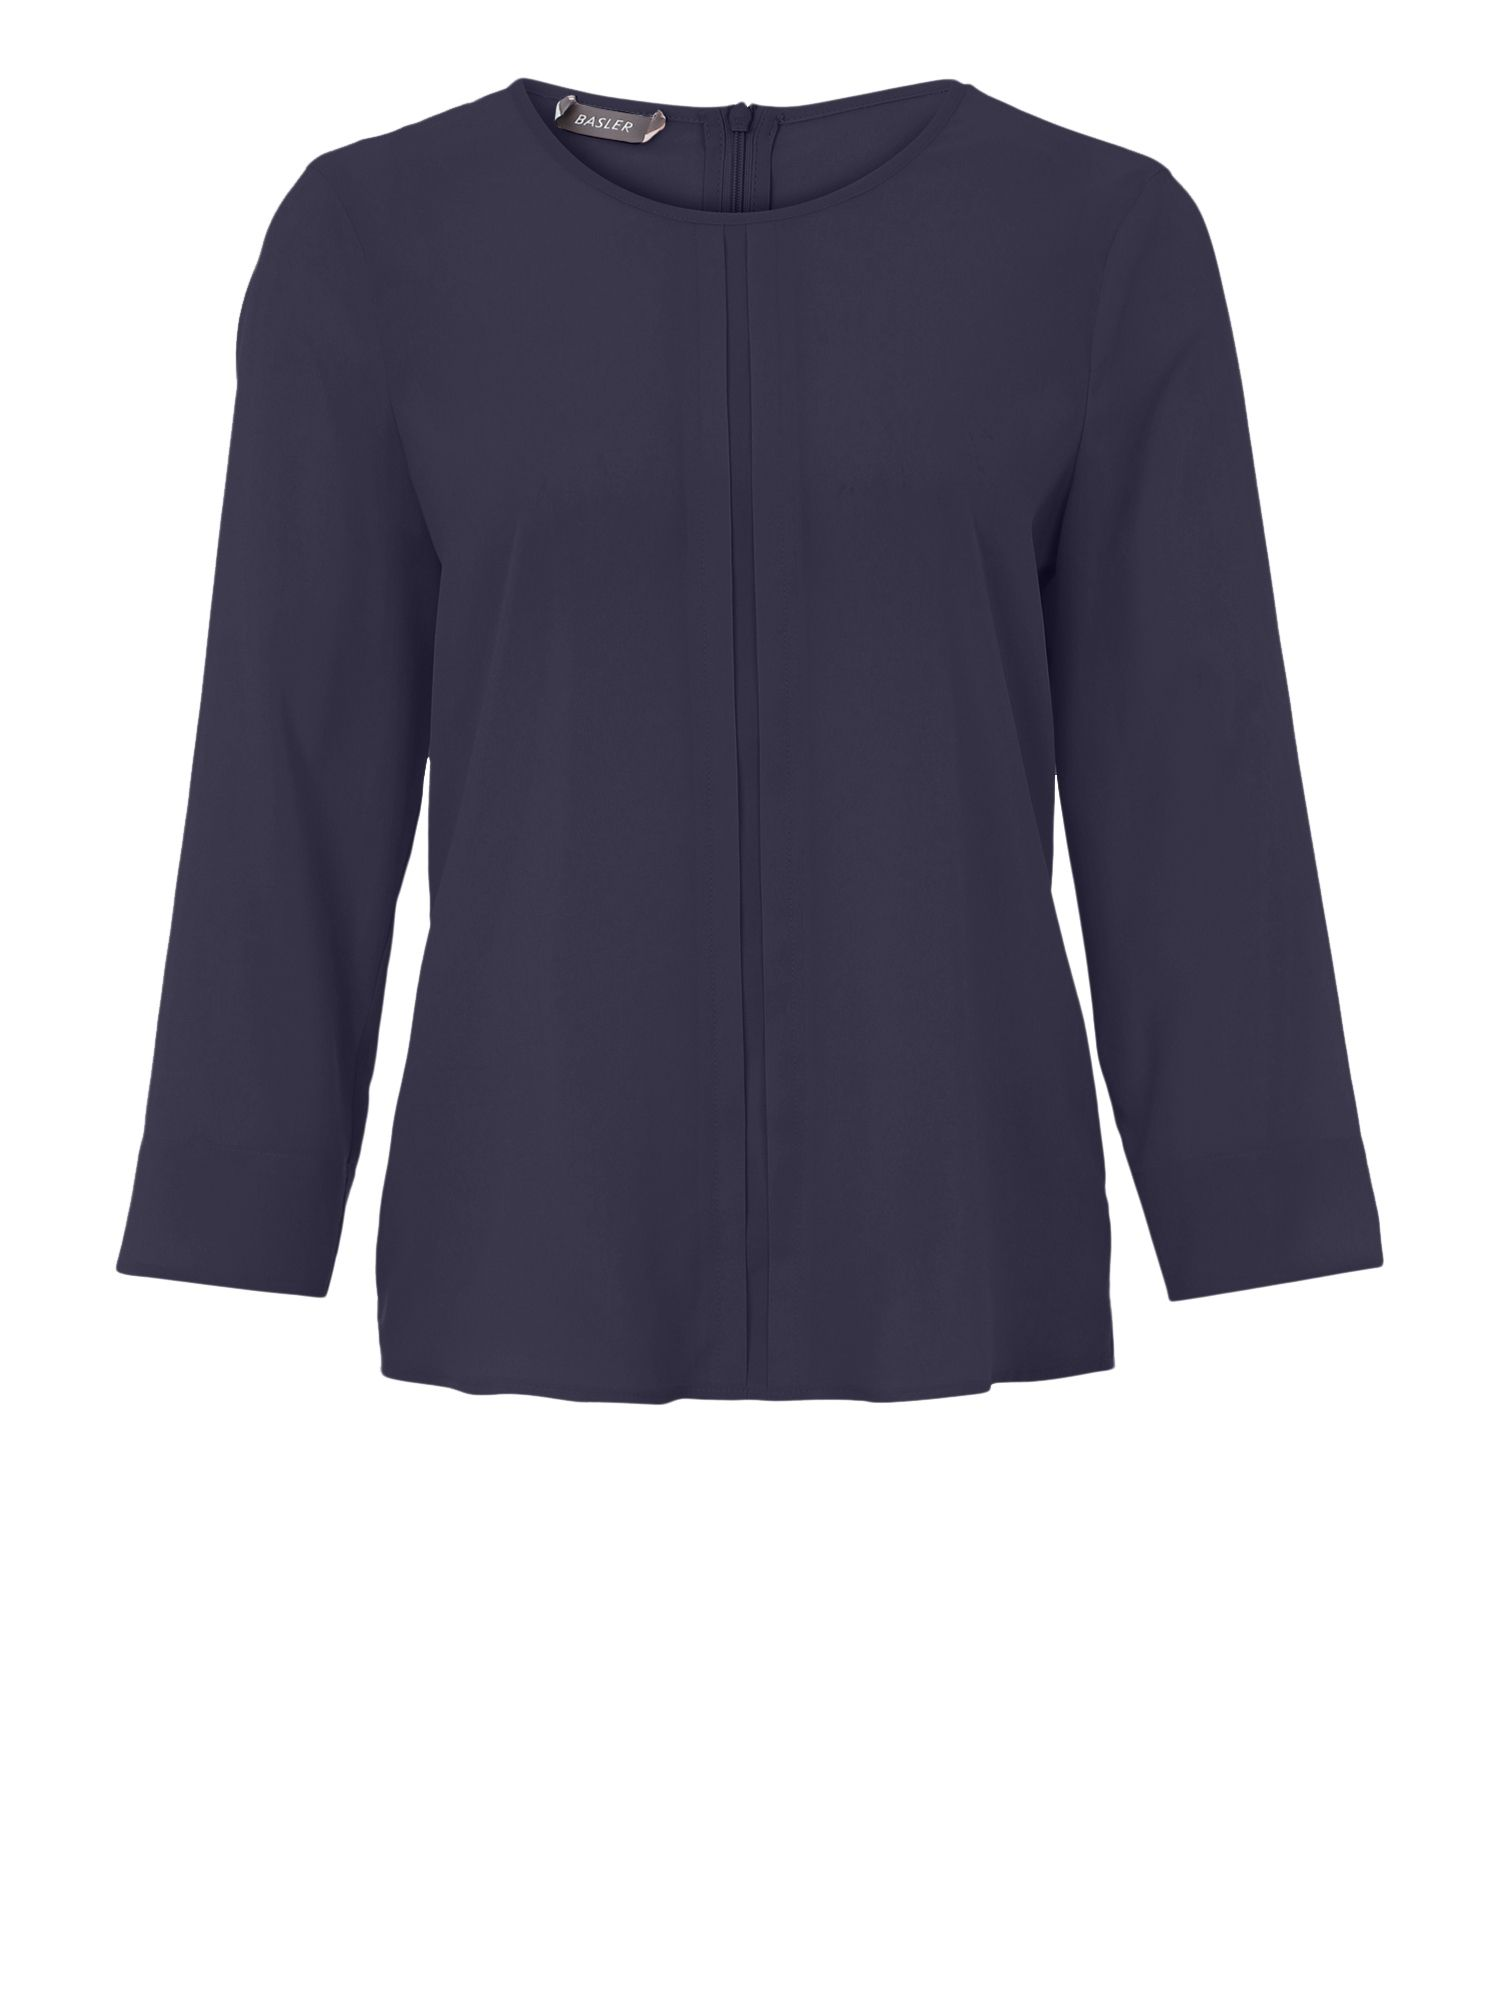 Basler Basler Blouse With Detail Down The Front, Navy